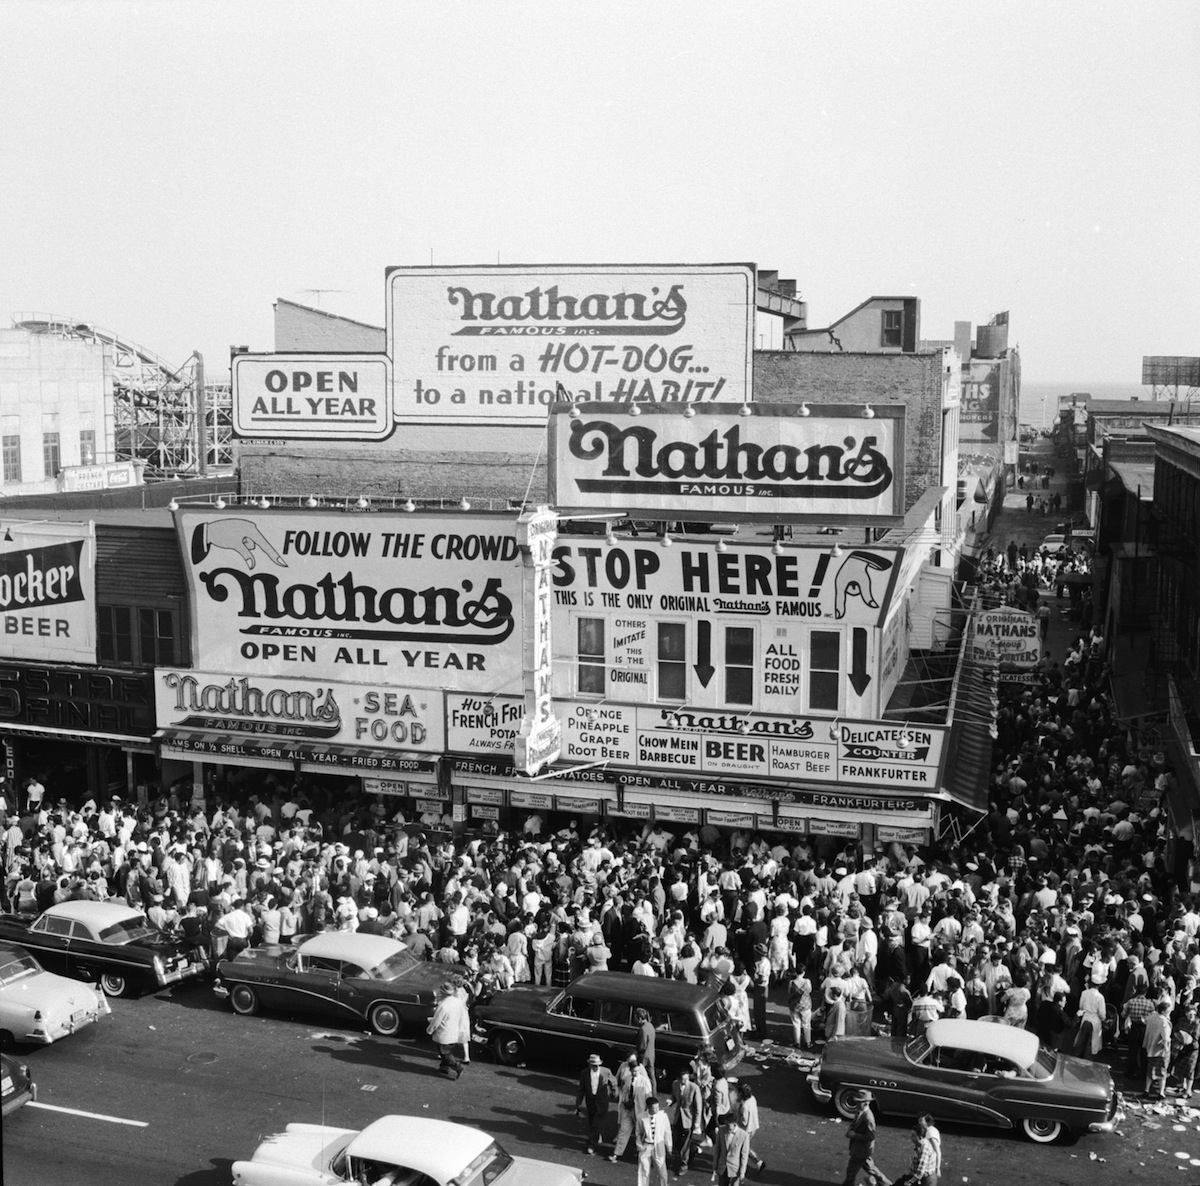 Crowds outside Nathan's Famous hot dog stand on Coney Island, New York City, circa 1955